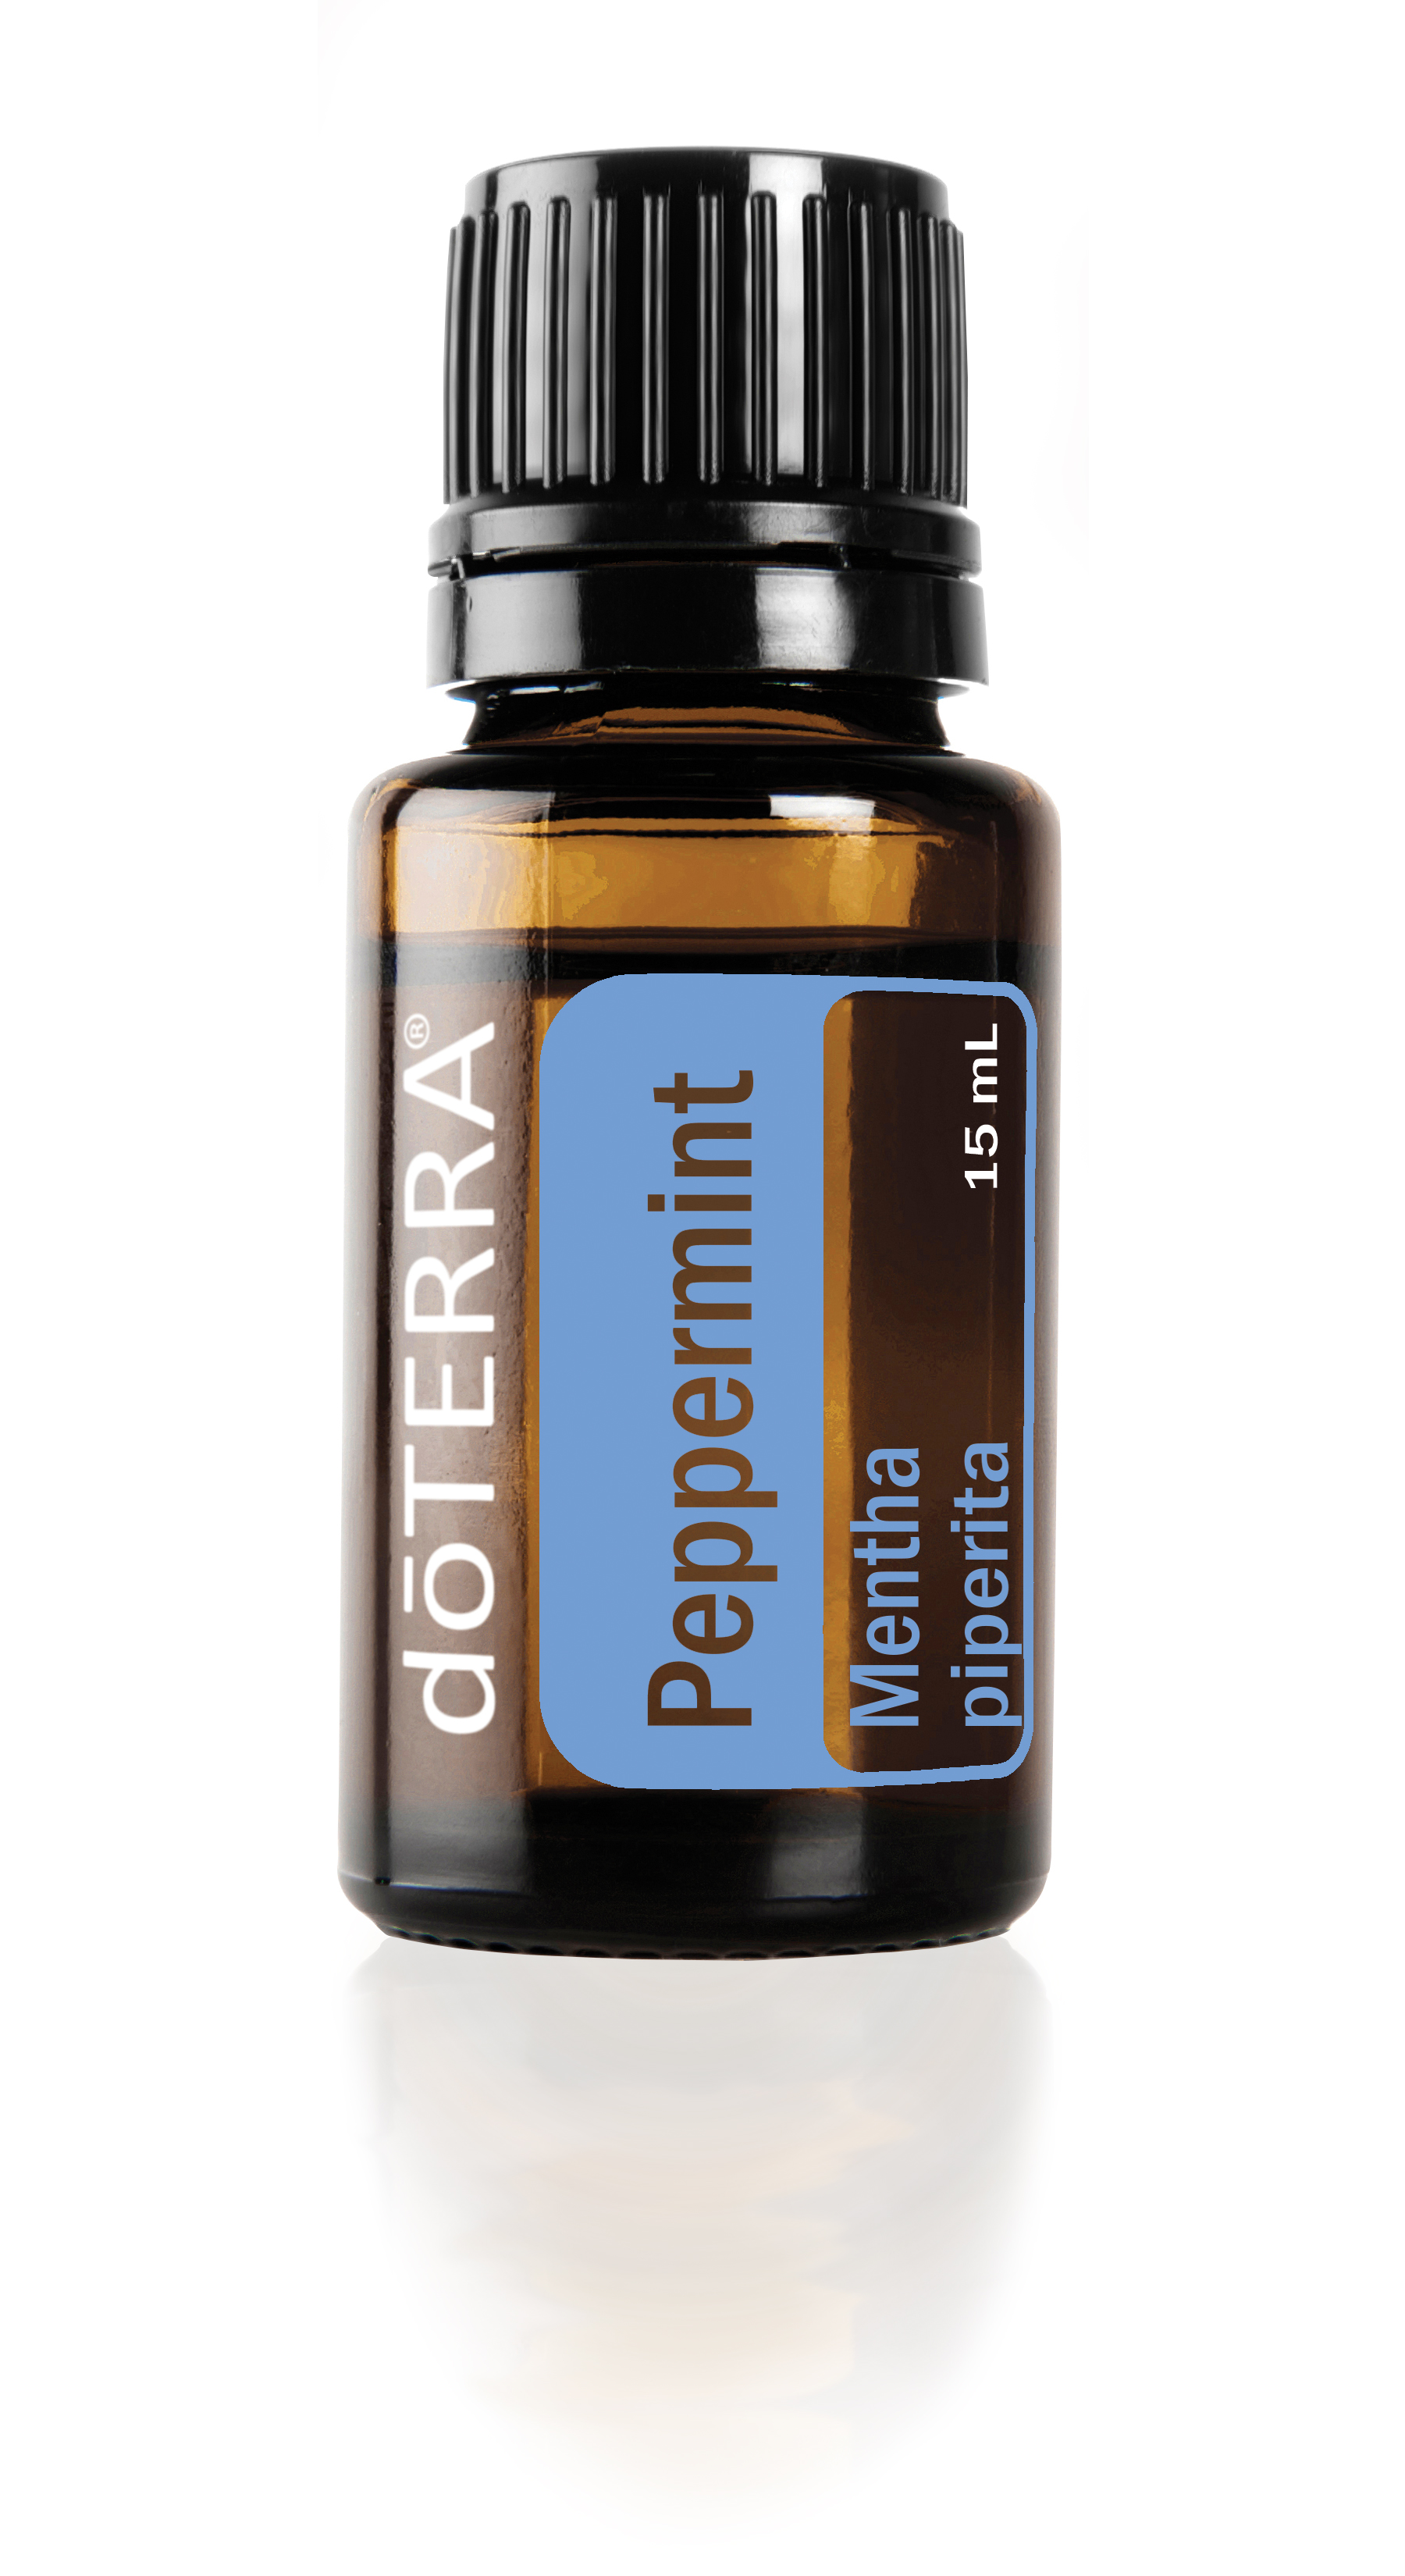 Peppermint Essential Oil - Peppermint Essential Oil is often described as Cooling, Minty and Fresh!  It helps alleviate occasional stomach upset and promotes healthy respiratory function. There are so many ways to use this oil and it smells fantastic!